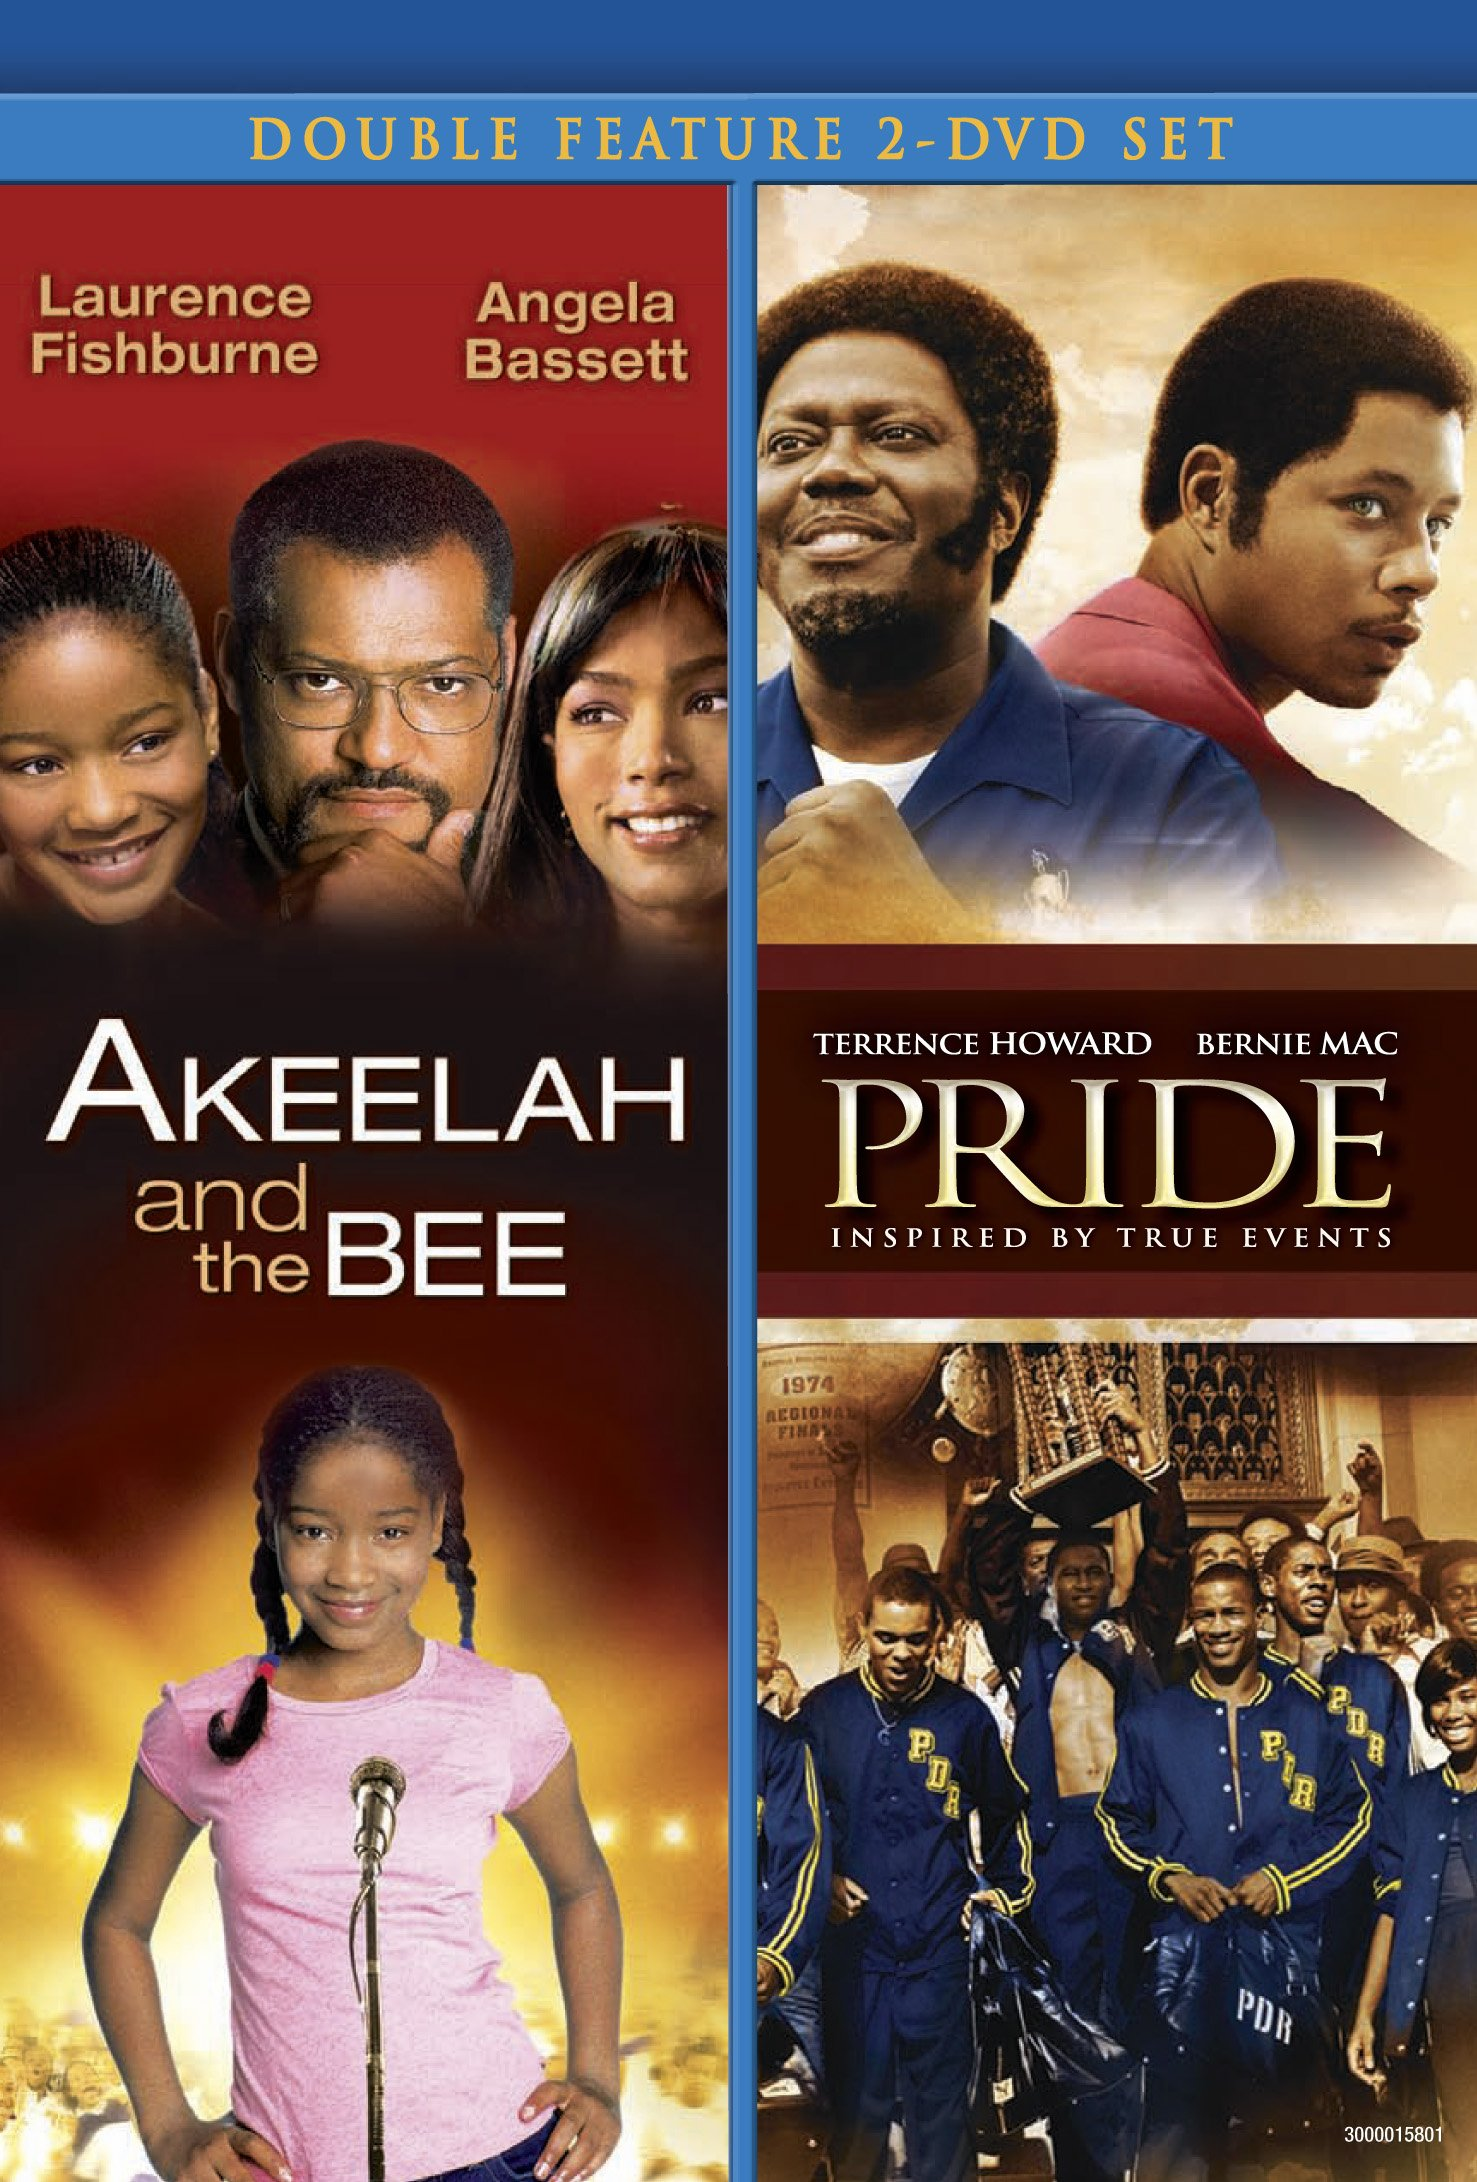 Akeelah and The Bee/ Pride [2007] [Double Feature] (2PC)